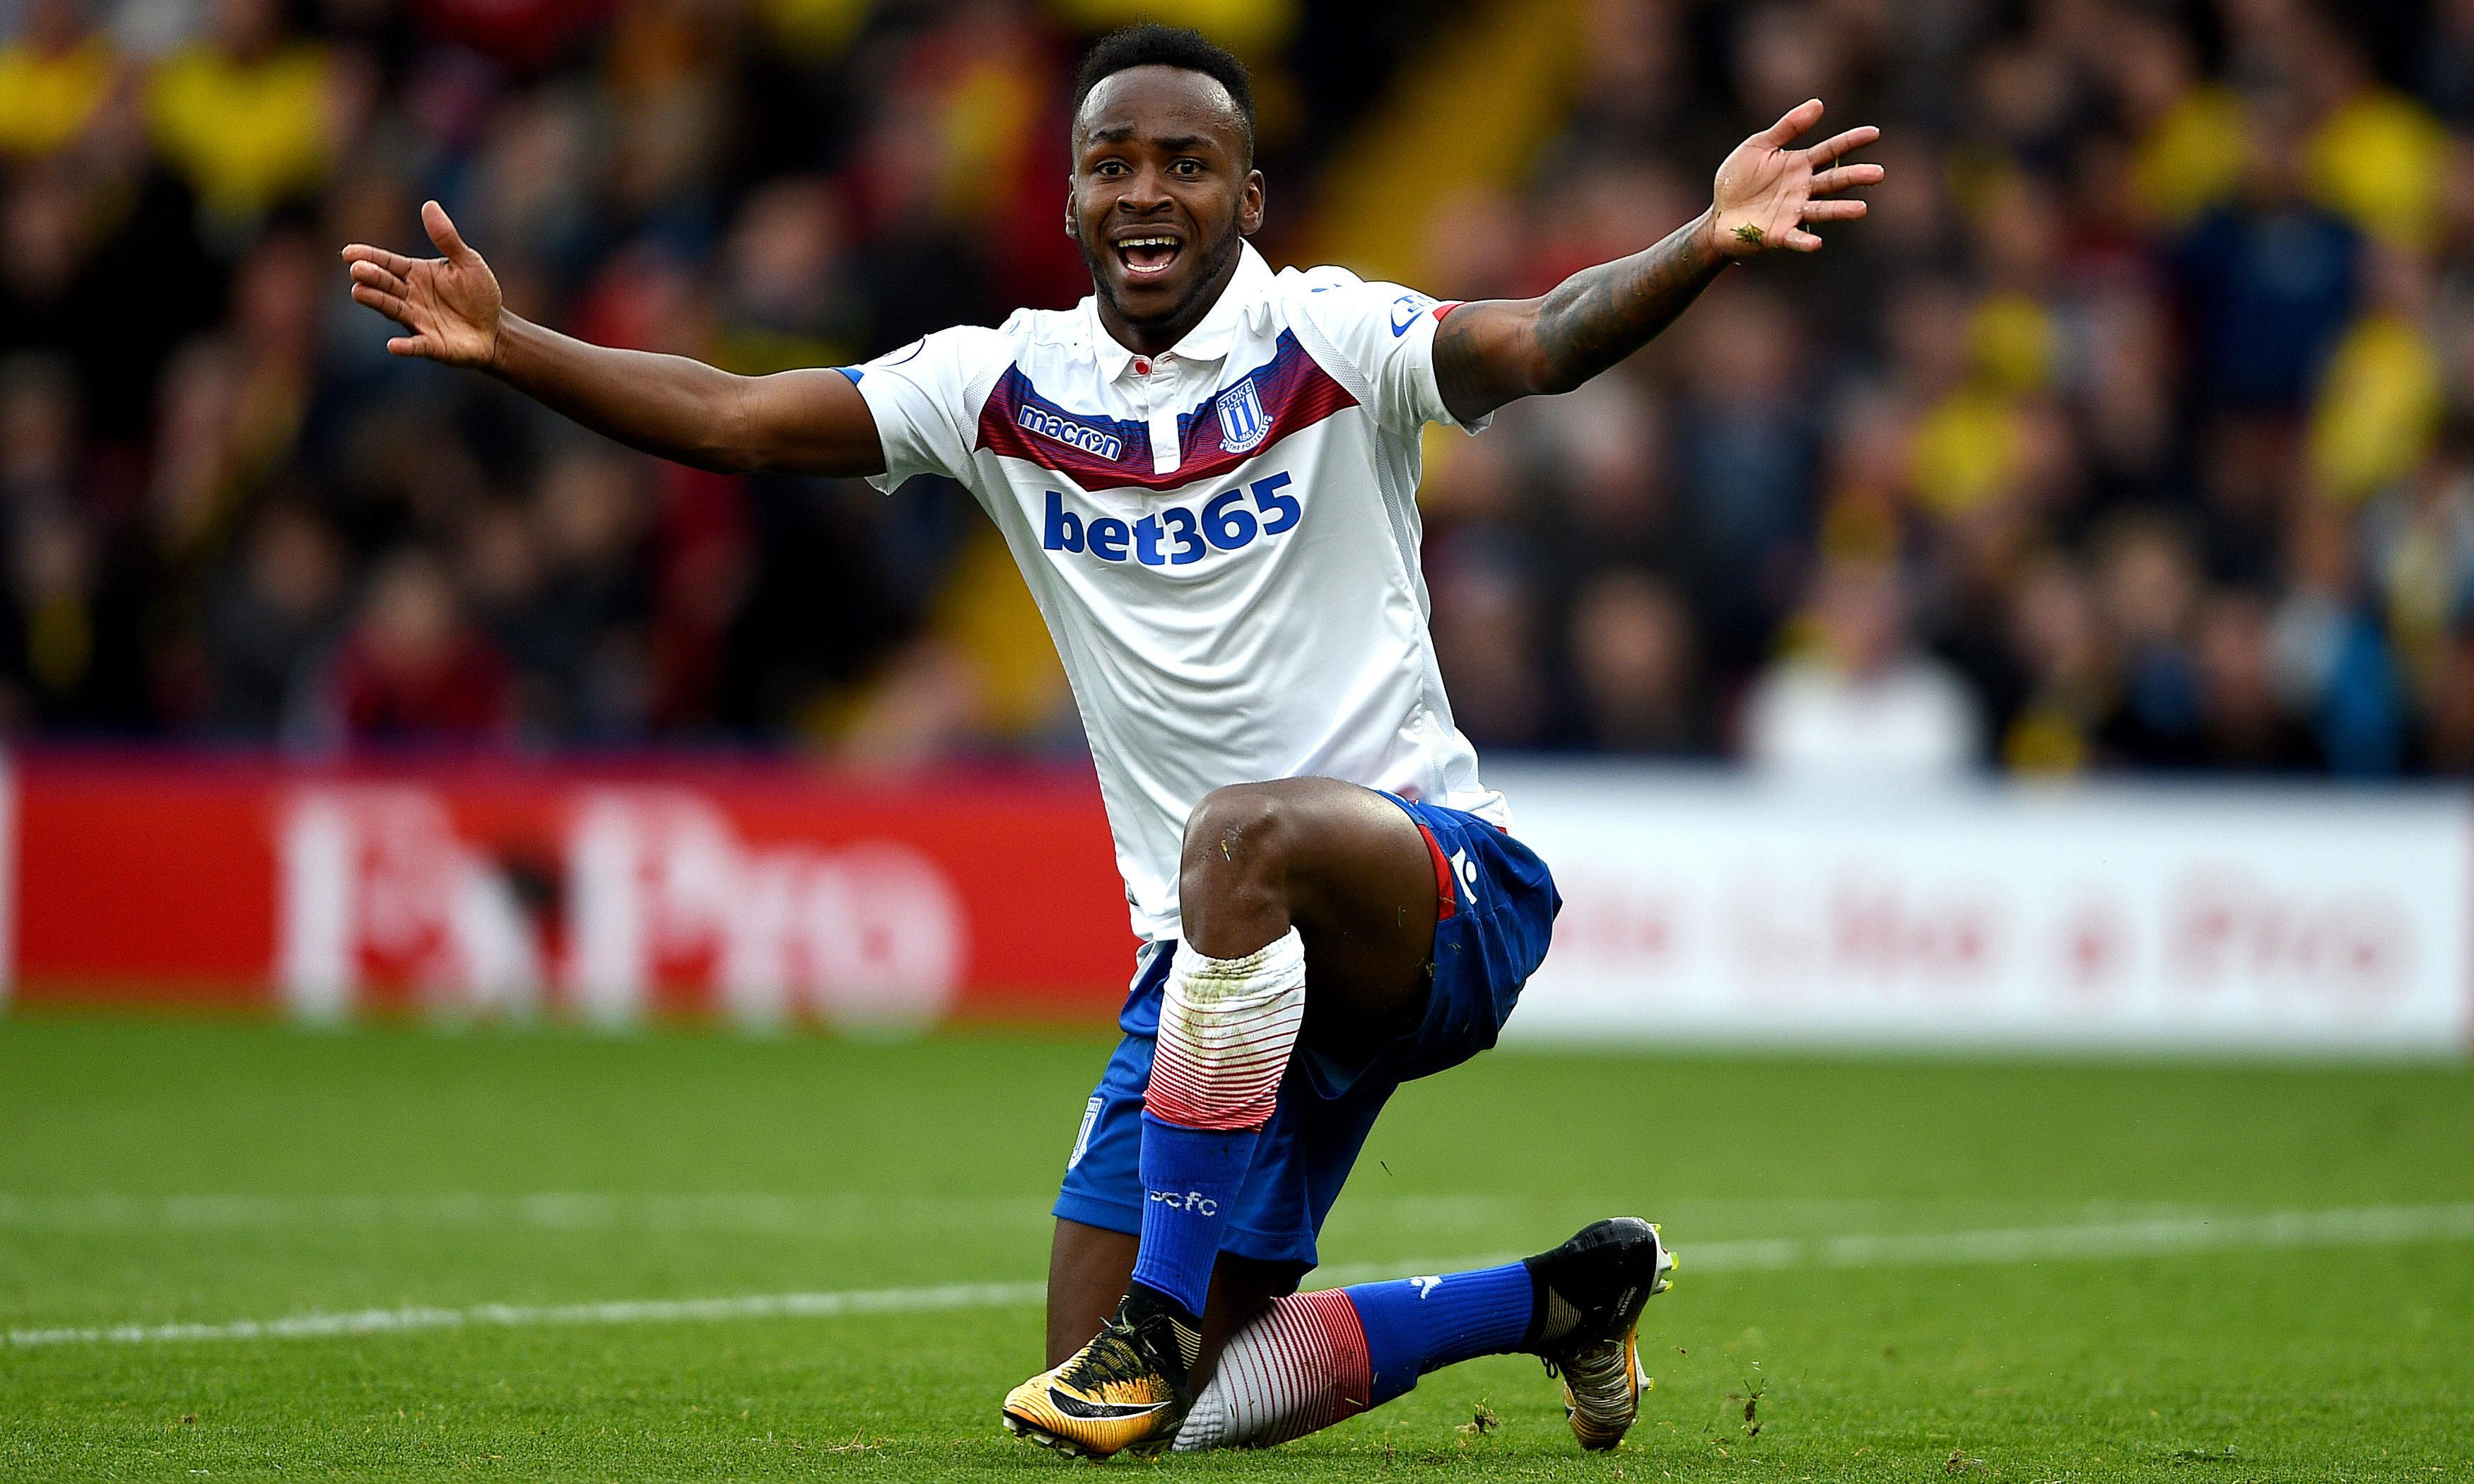 Football transfer rumours: Stoke to offload Saido Berahino after arrest?